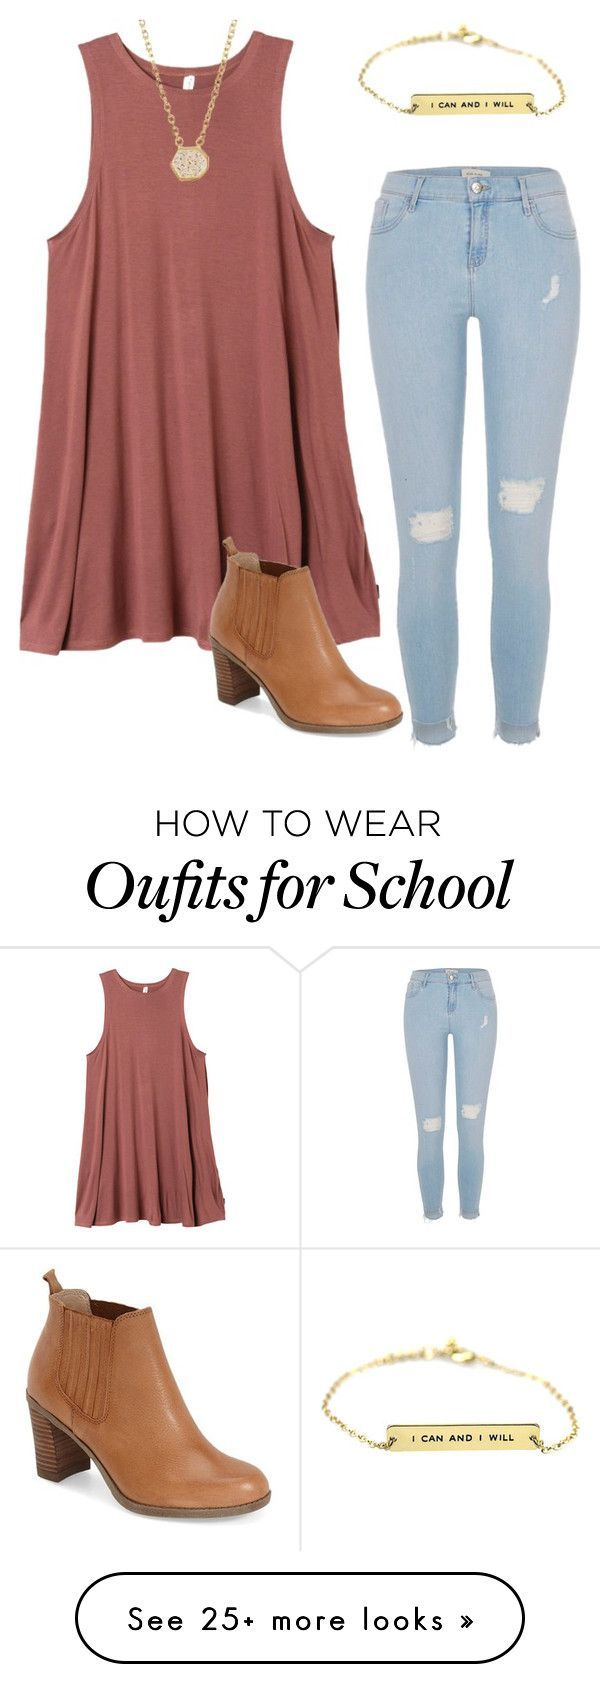 """school"" by hannahmmeyer on Polyvore featuring River Island, RVCA, SonyaRenée and Dr. Scholl's                                                                                                                                                                                 More"